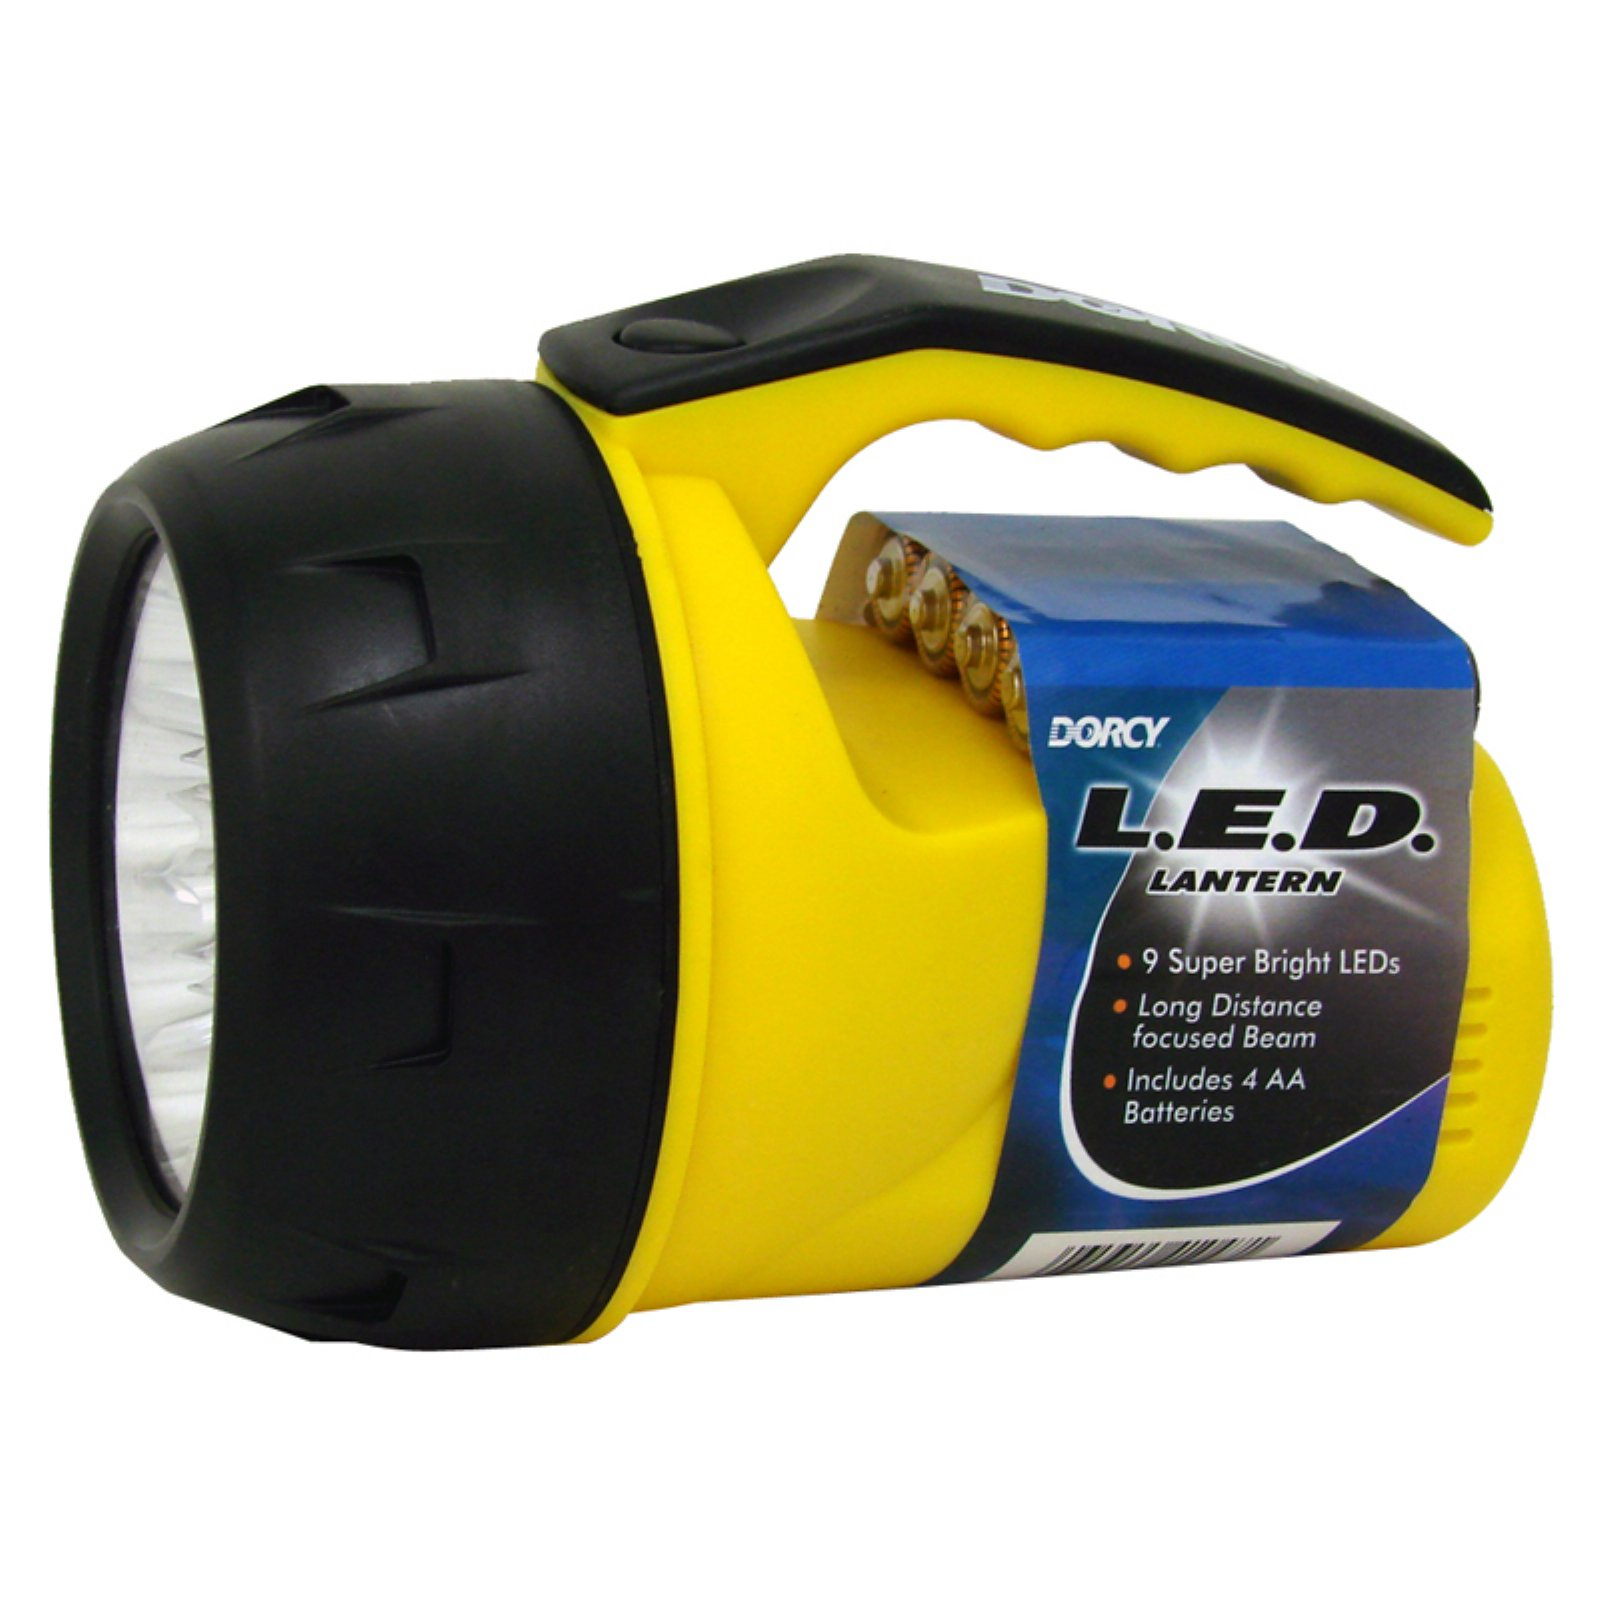 Dorcy Handheld Flashlight/Spot Light, 41-1047